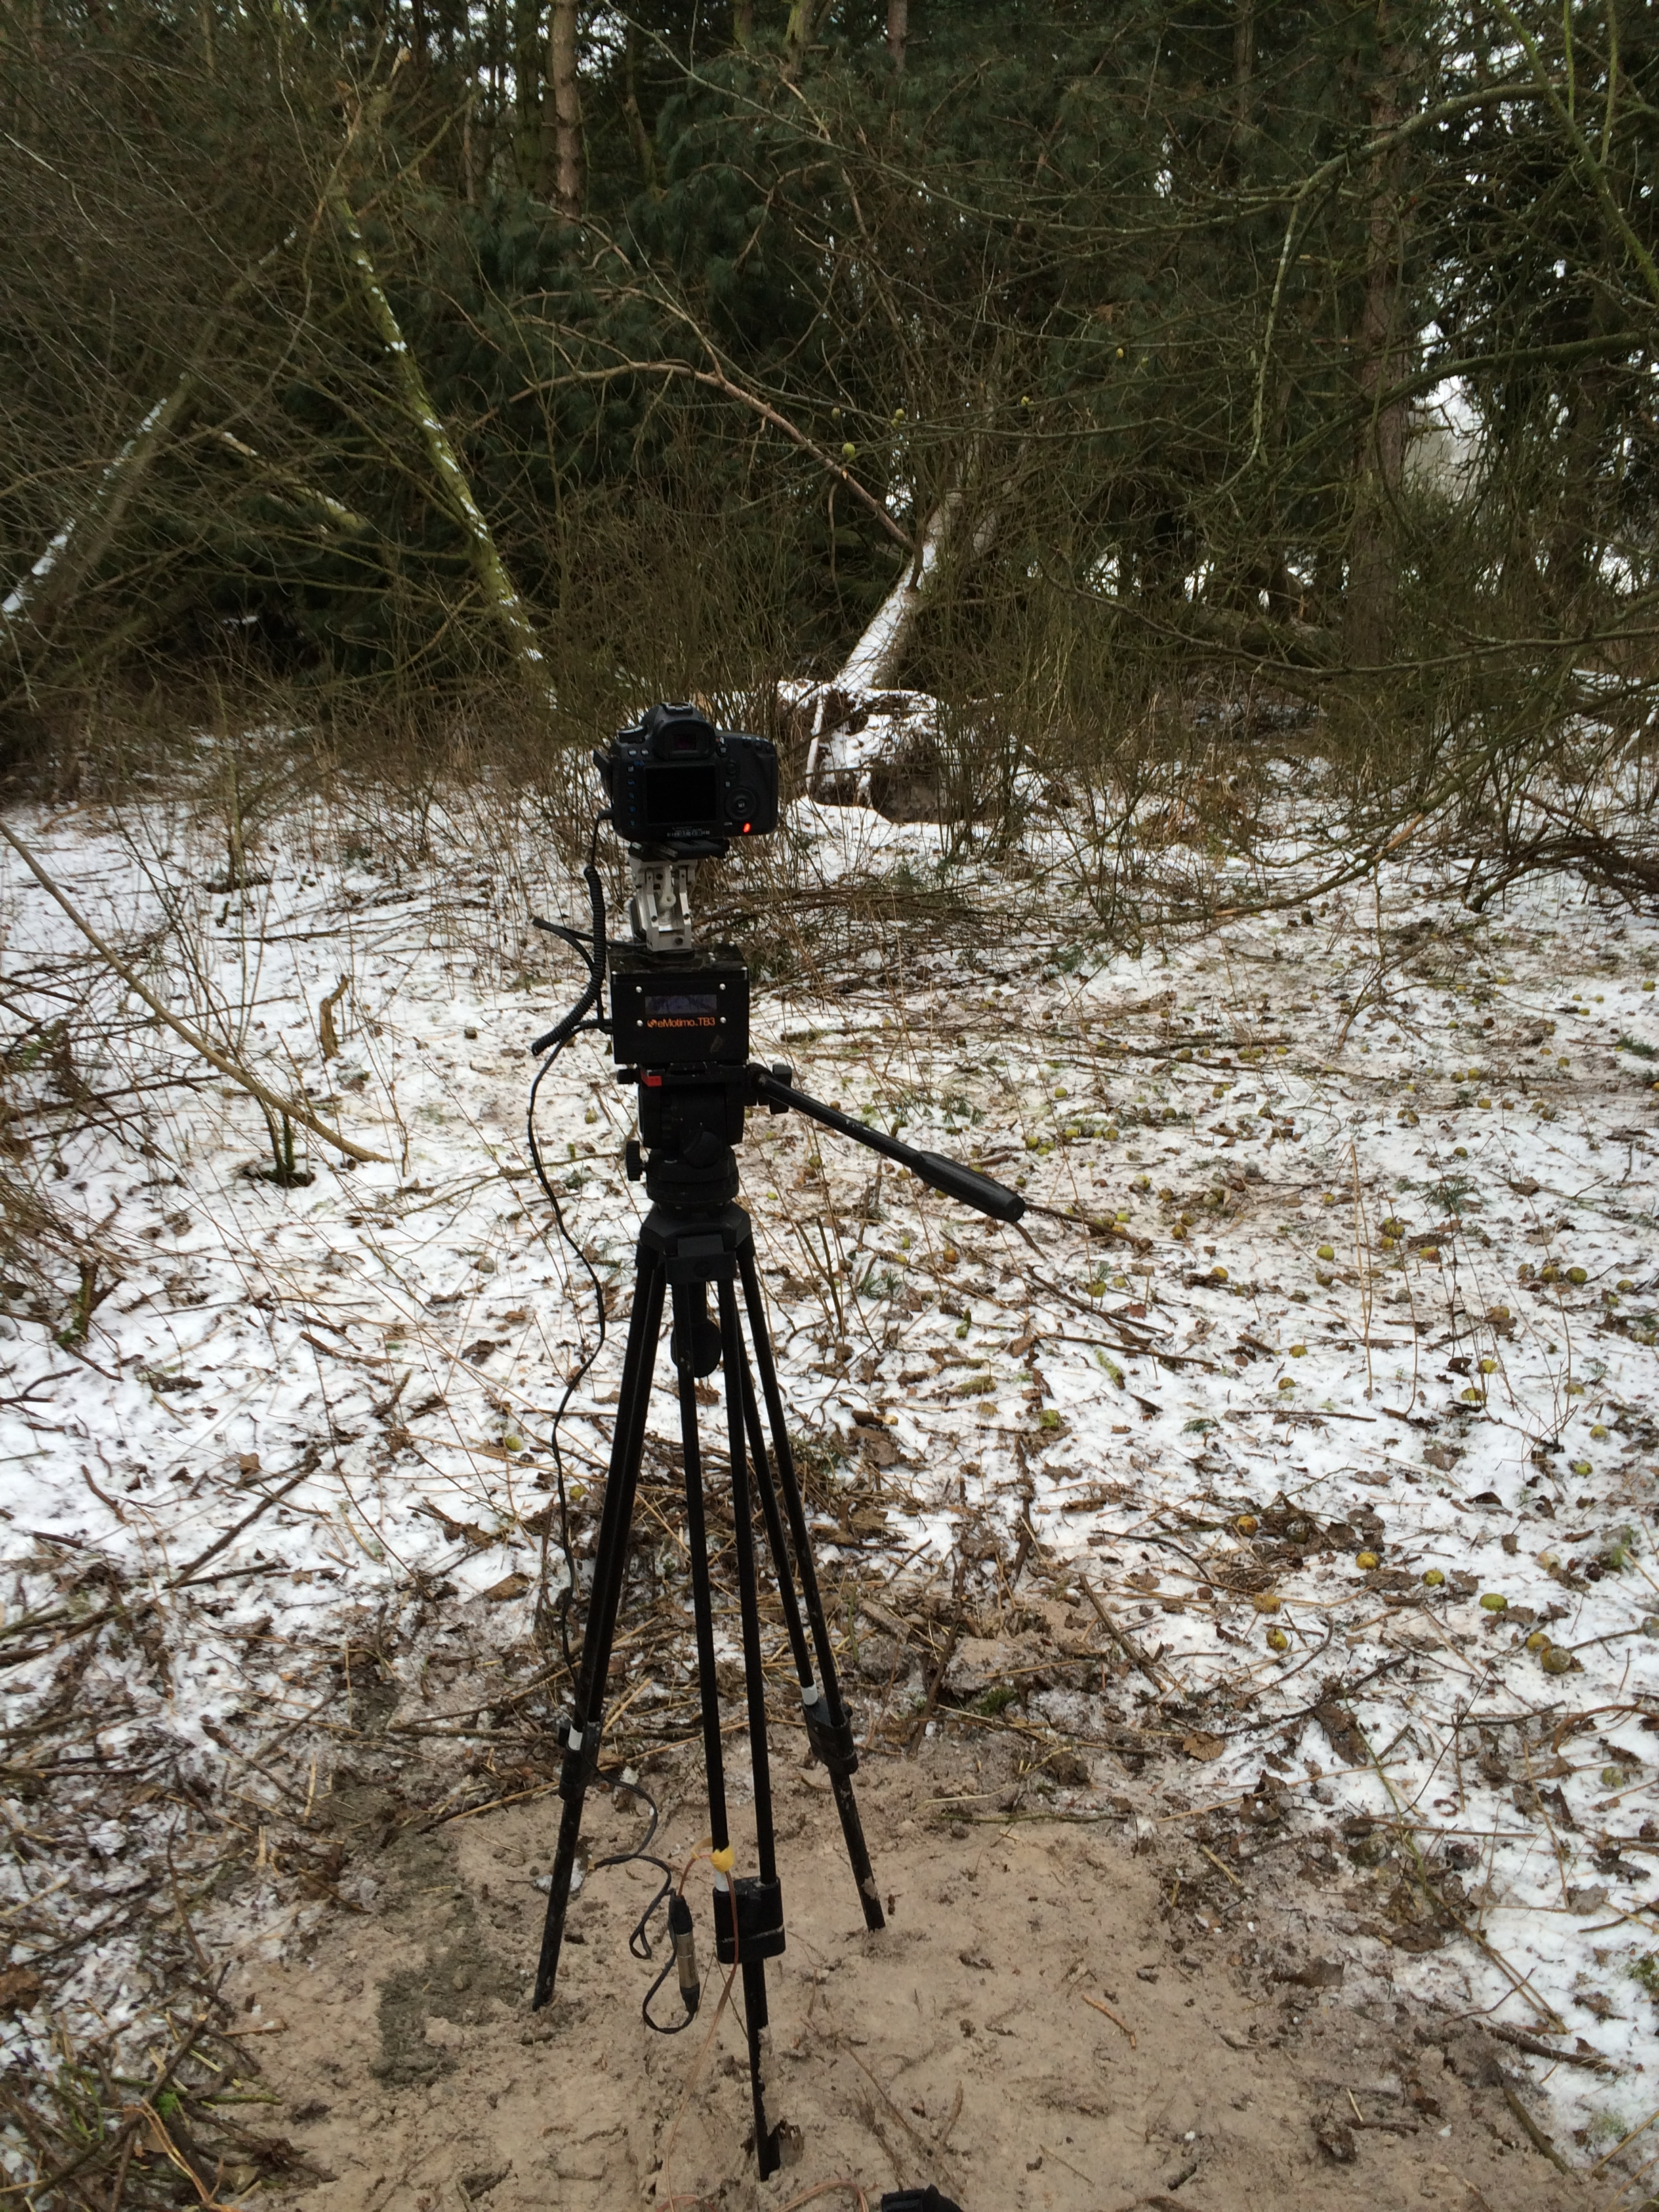 The 'buried' tripod.  A minute's silence was held shortly after in respect.